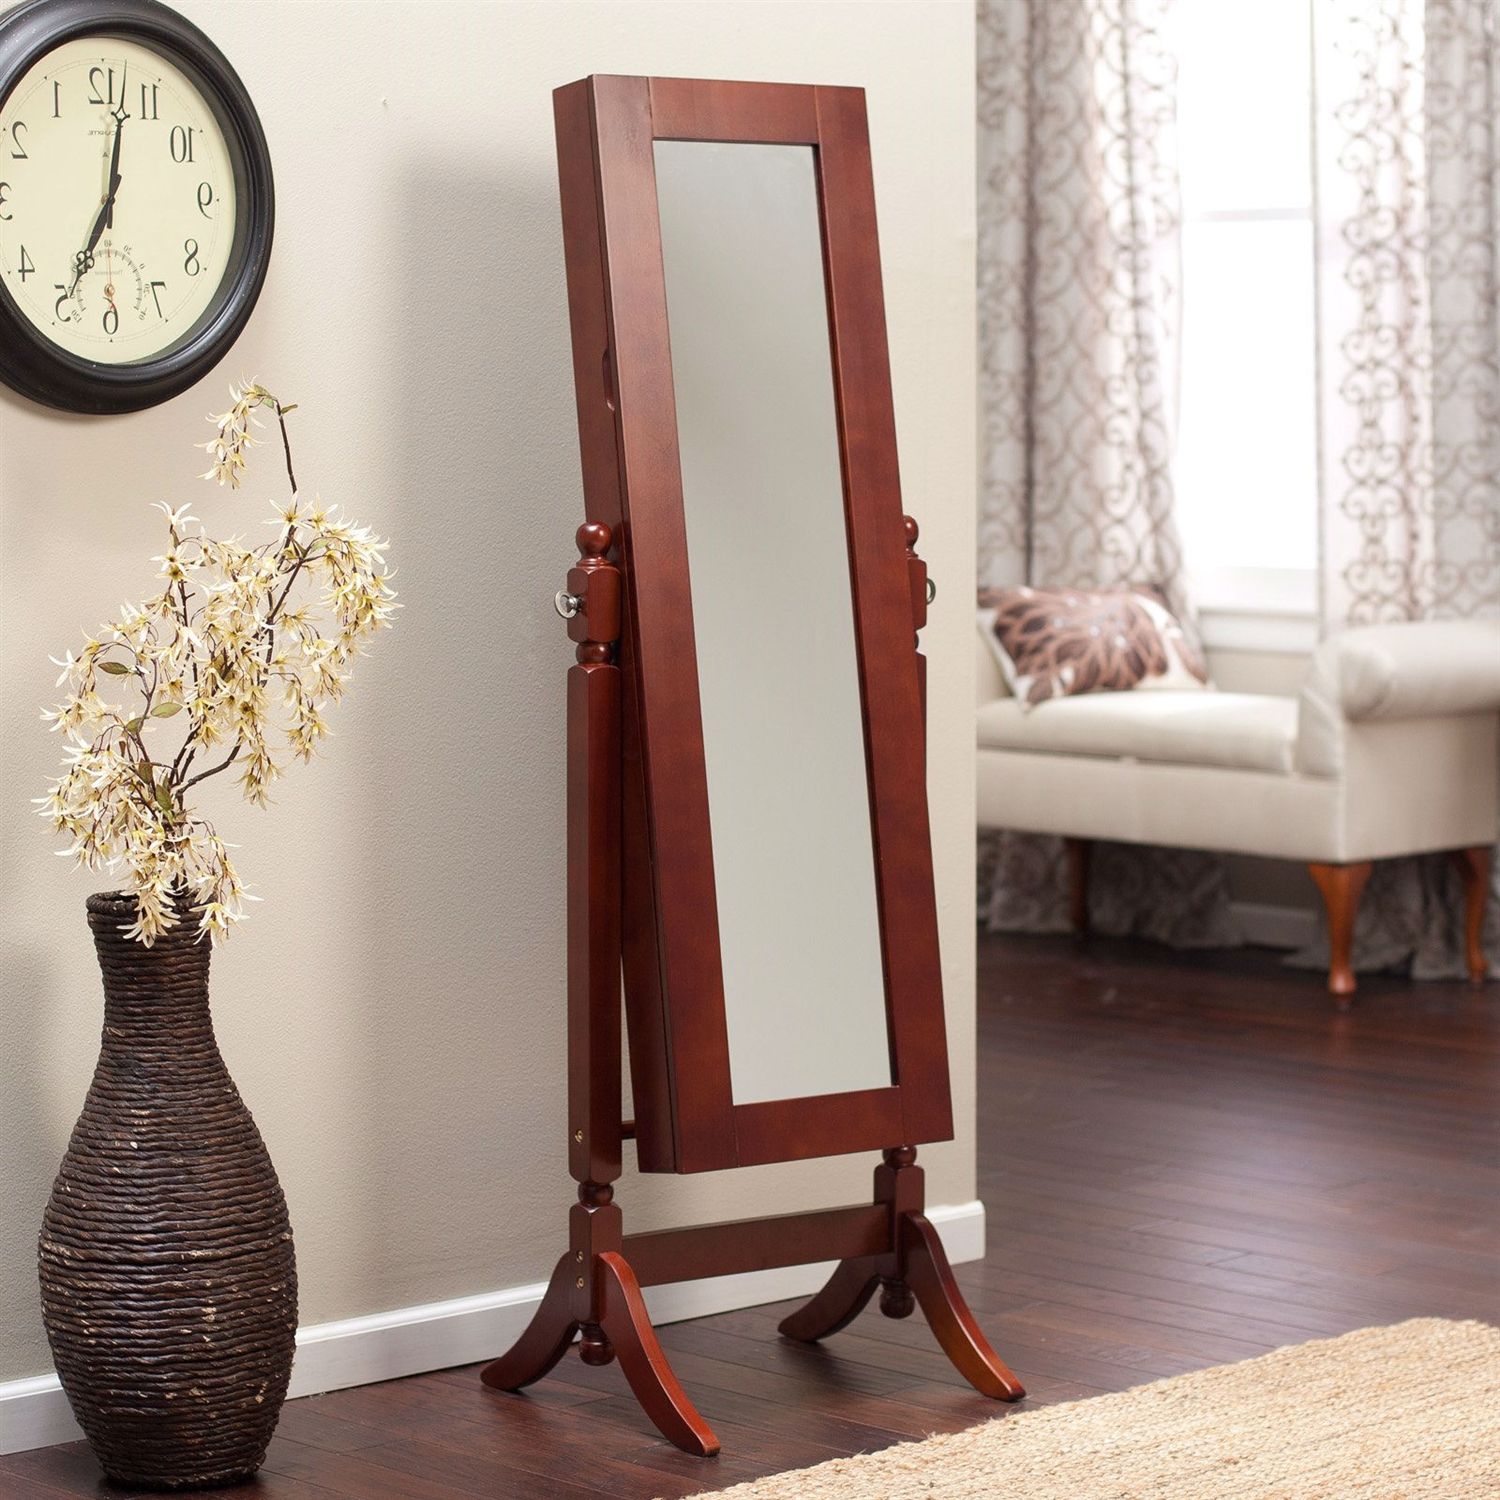 Lovely Full Length Tilting Cheval Mirror Jewelry Armoire In Cherry Wood Finish